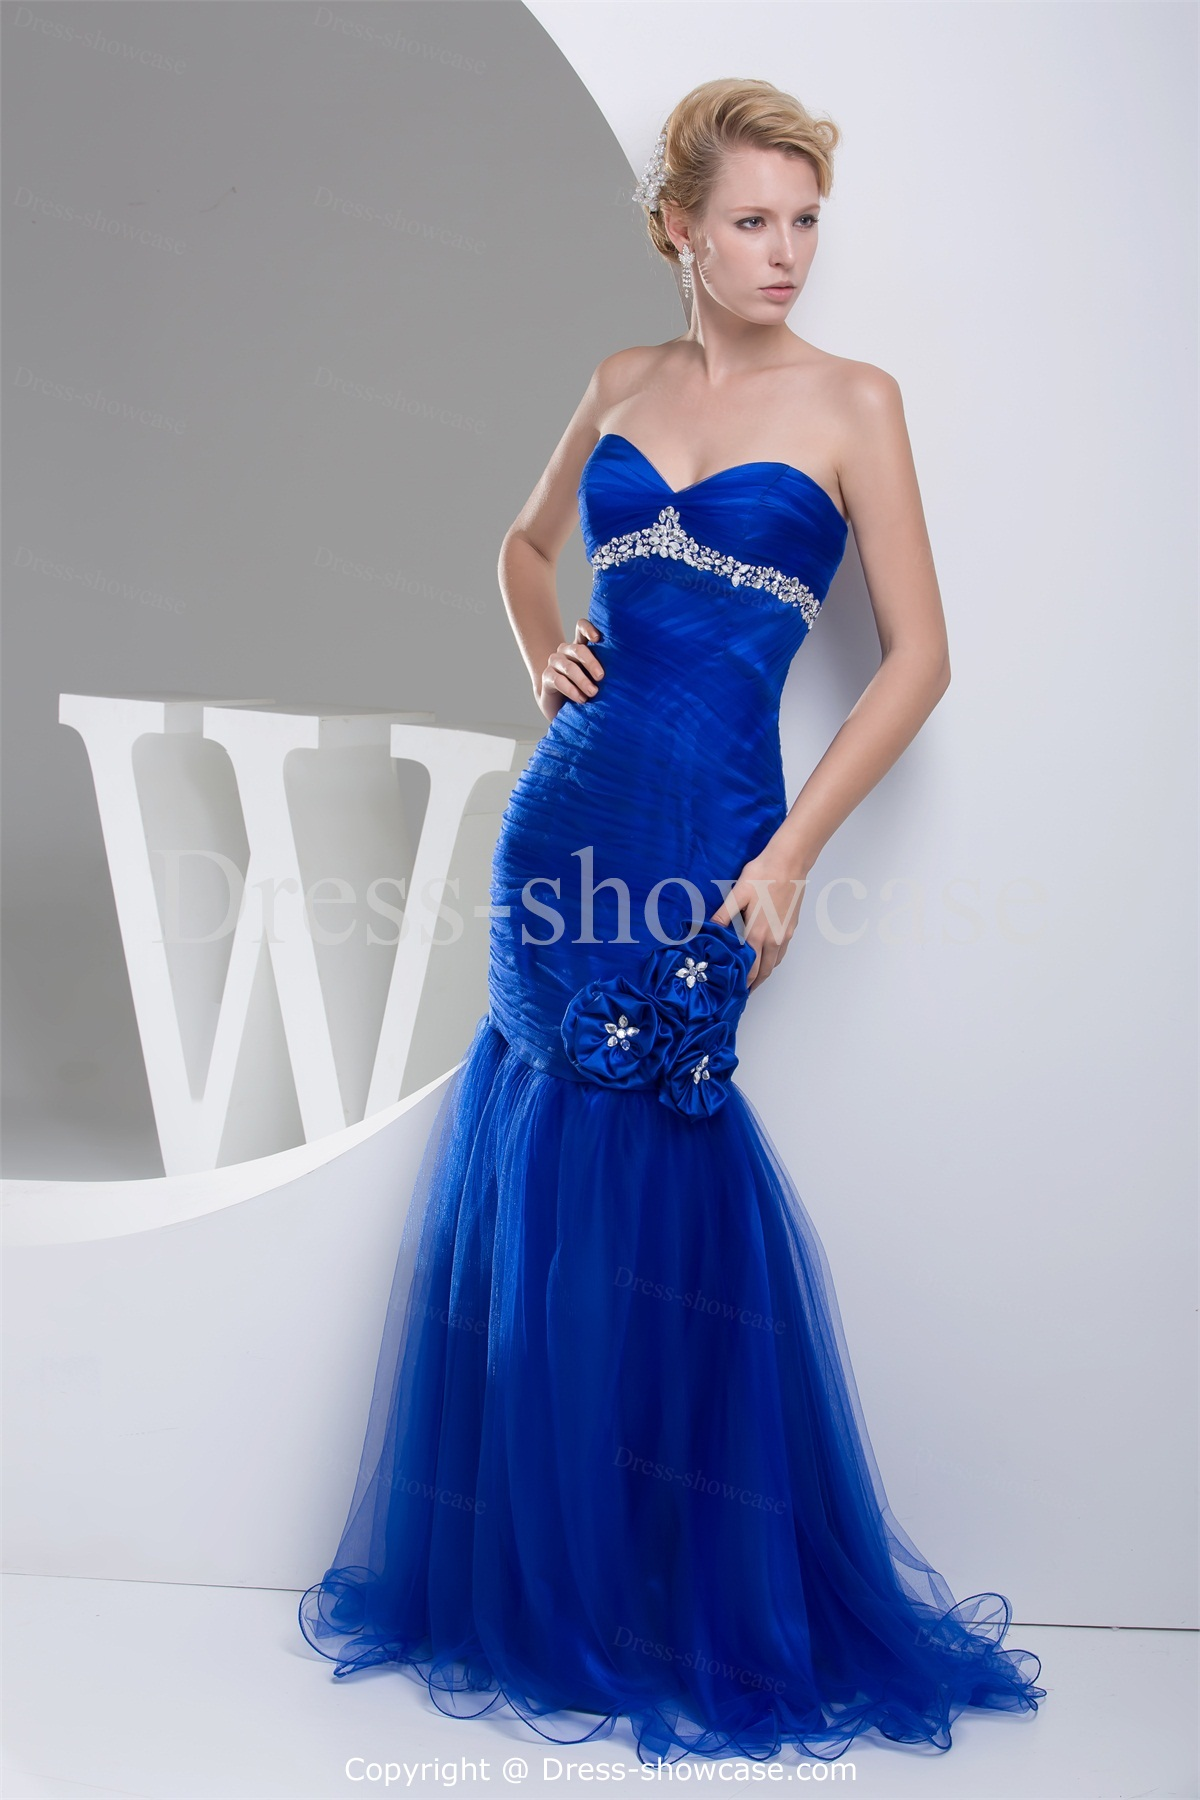 Wedding Dresses In Royal Blue : Royal blue wedding guest brush sweep train evening dress pictures